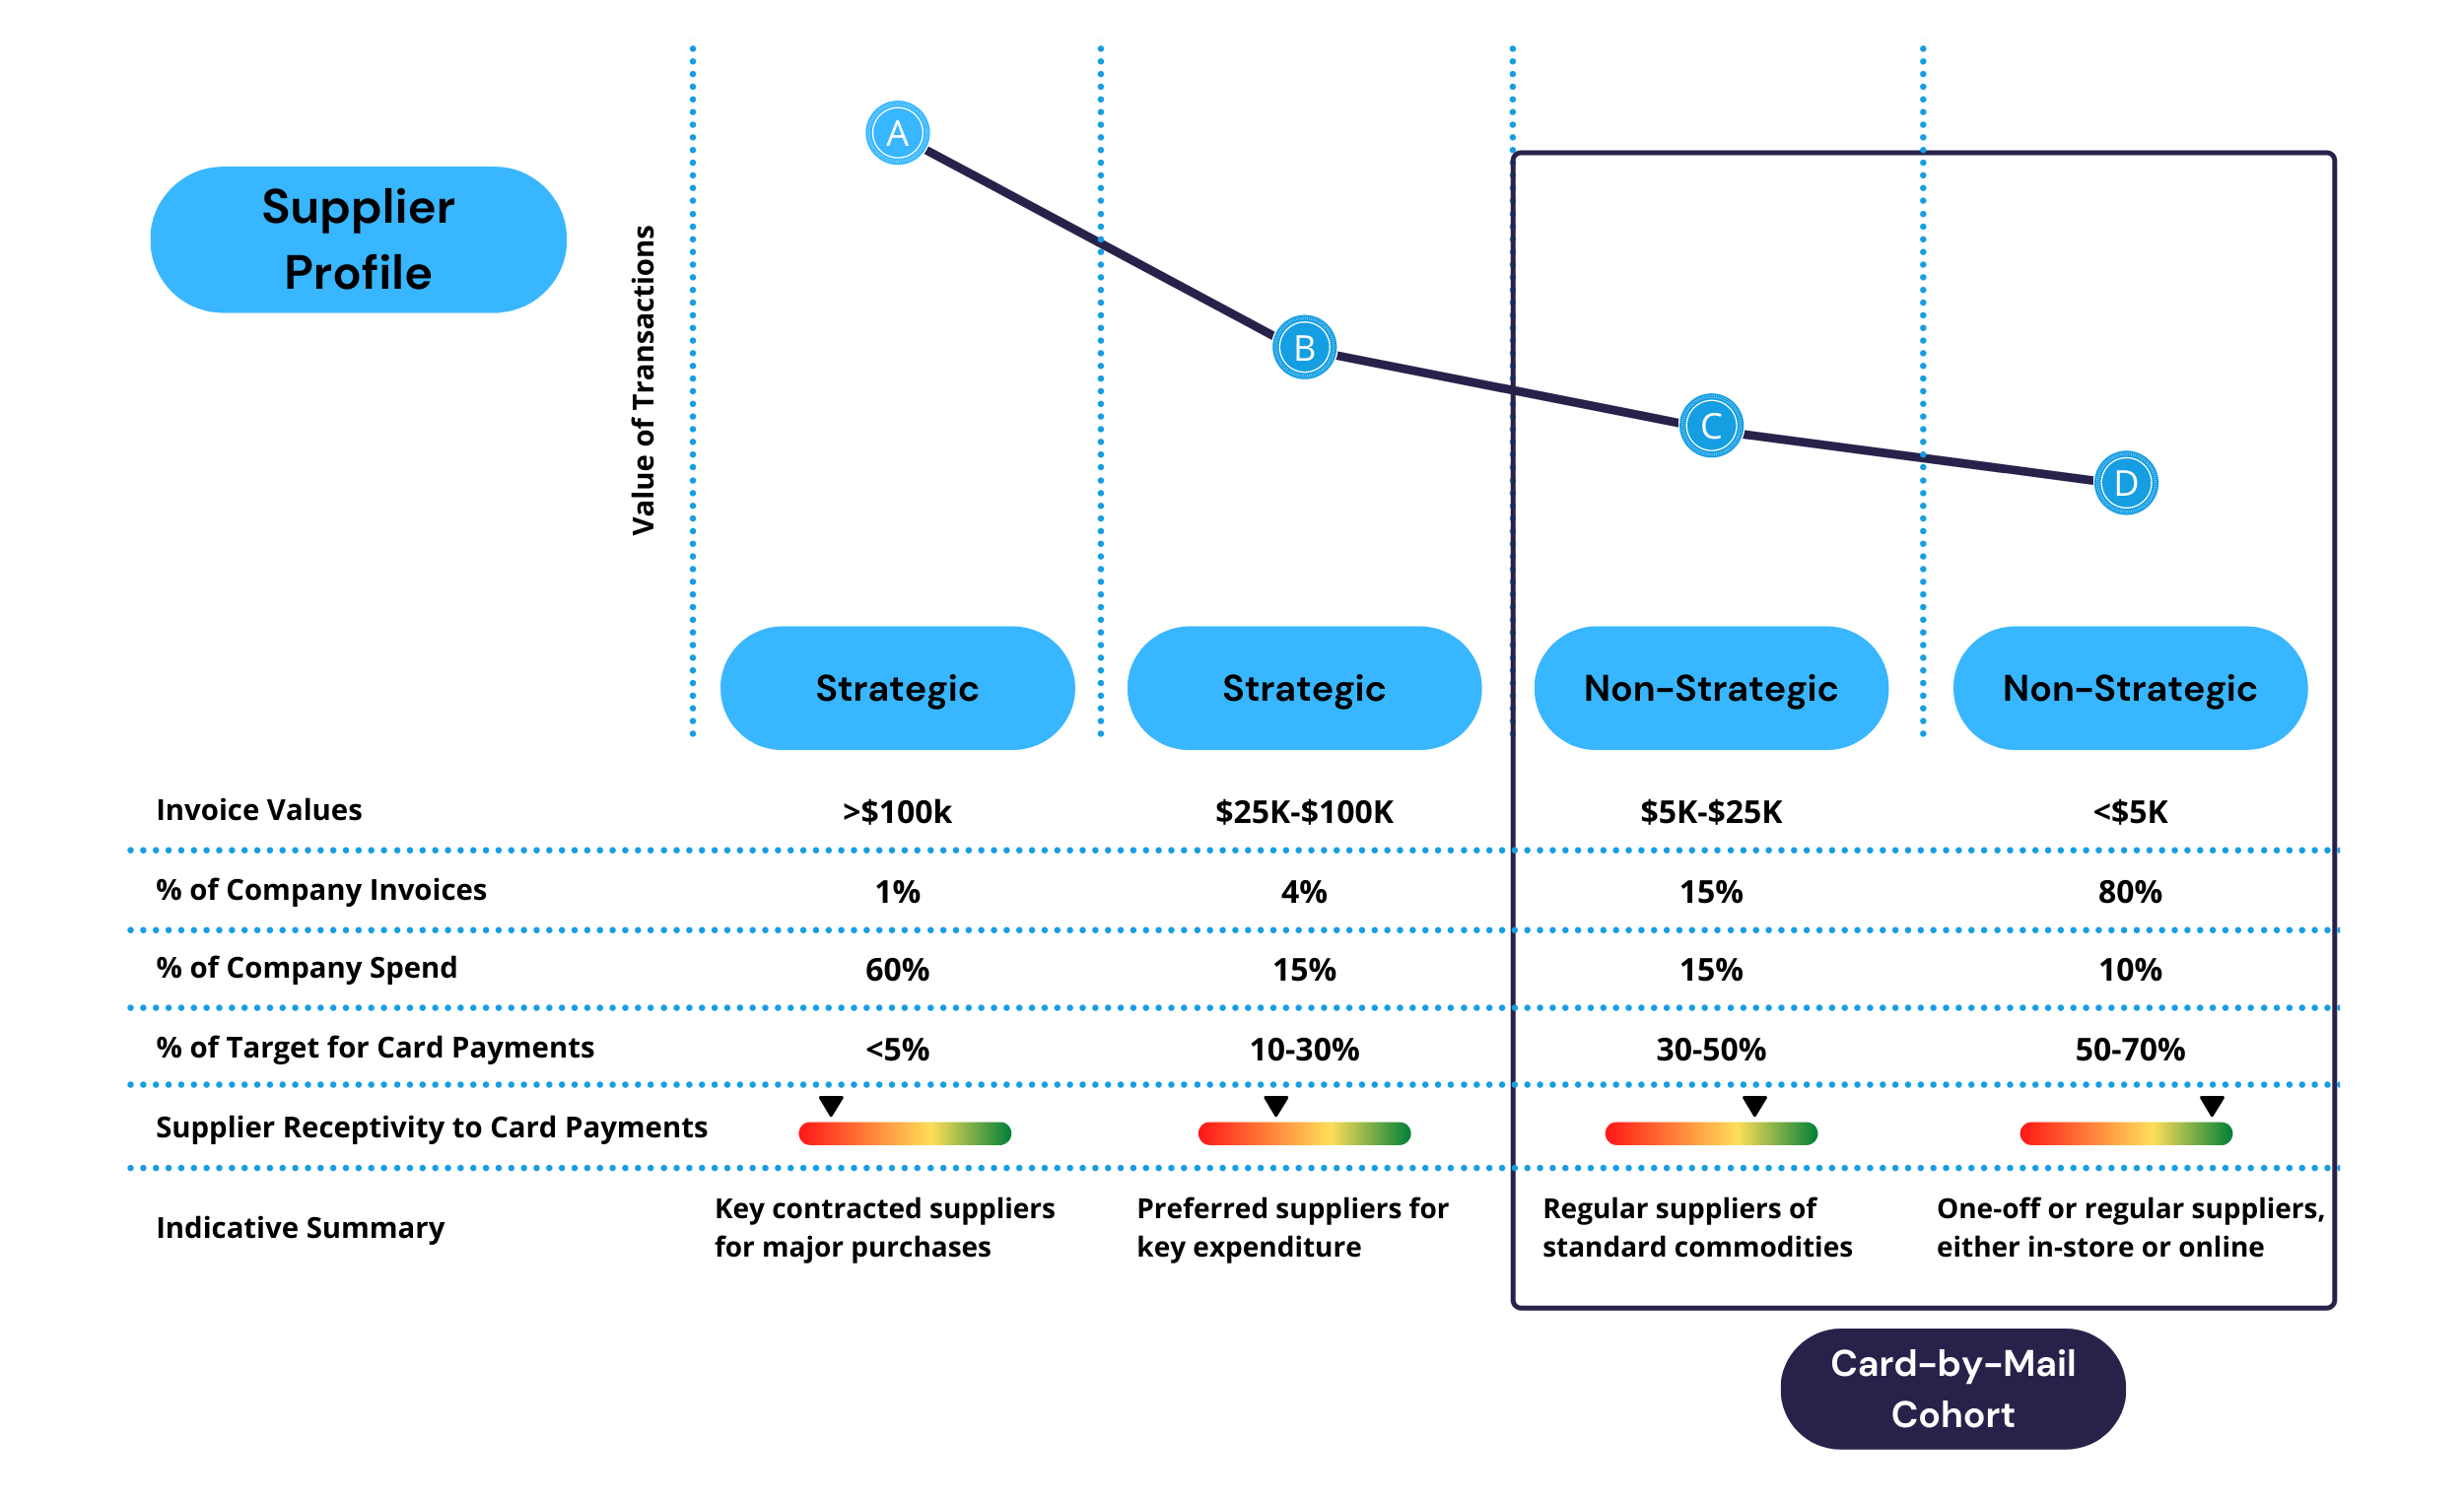 a graph depicting how Finexio's card by mail program can target non-strategic suppliers and increase value per transaction.